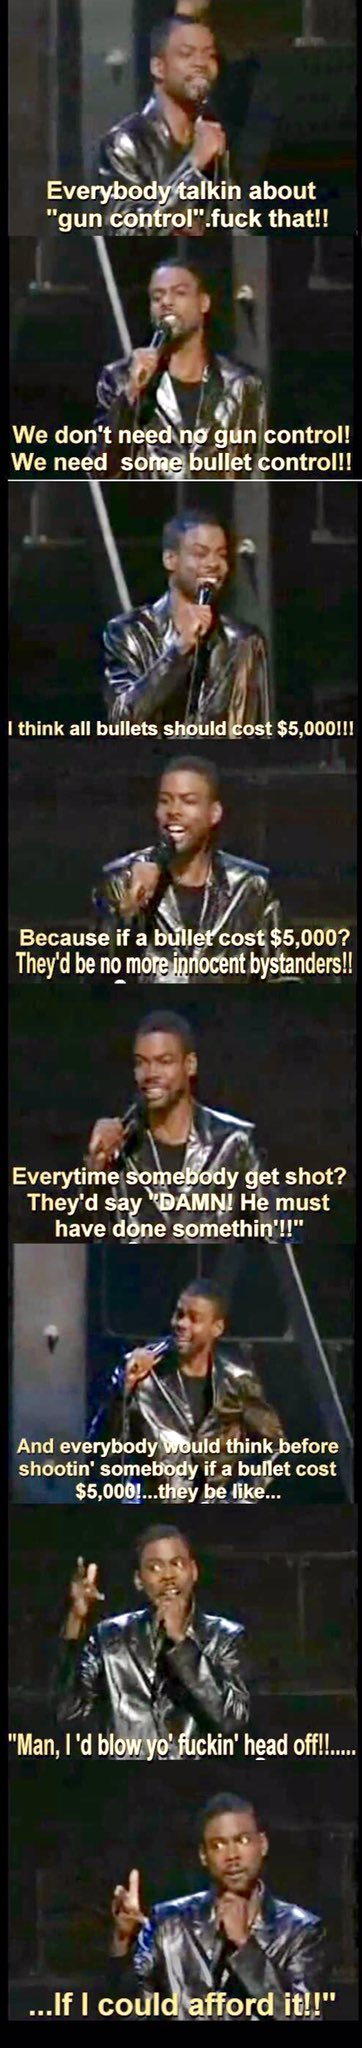 Man, Chris Rock makes more & more sense. In 1999, it was crazy talk, but maybe we could throw this against the wall... https://t.co/6jG1IxMx1S